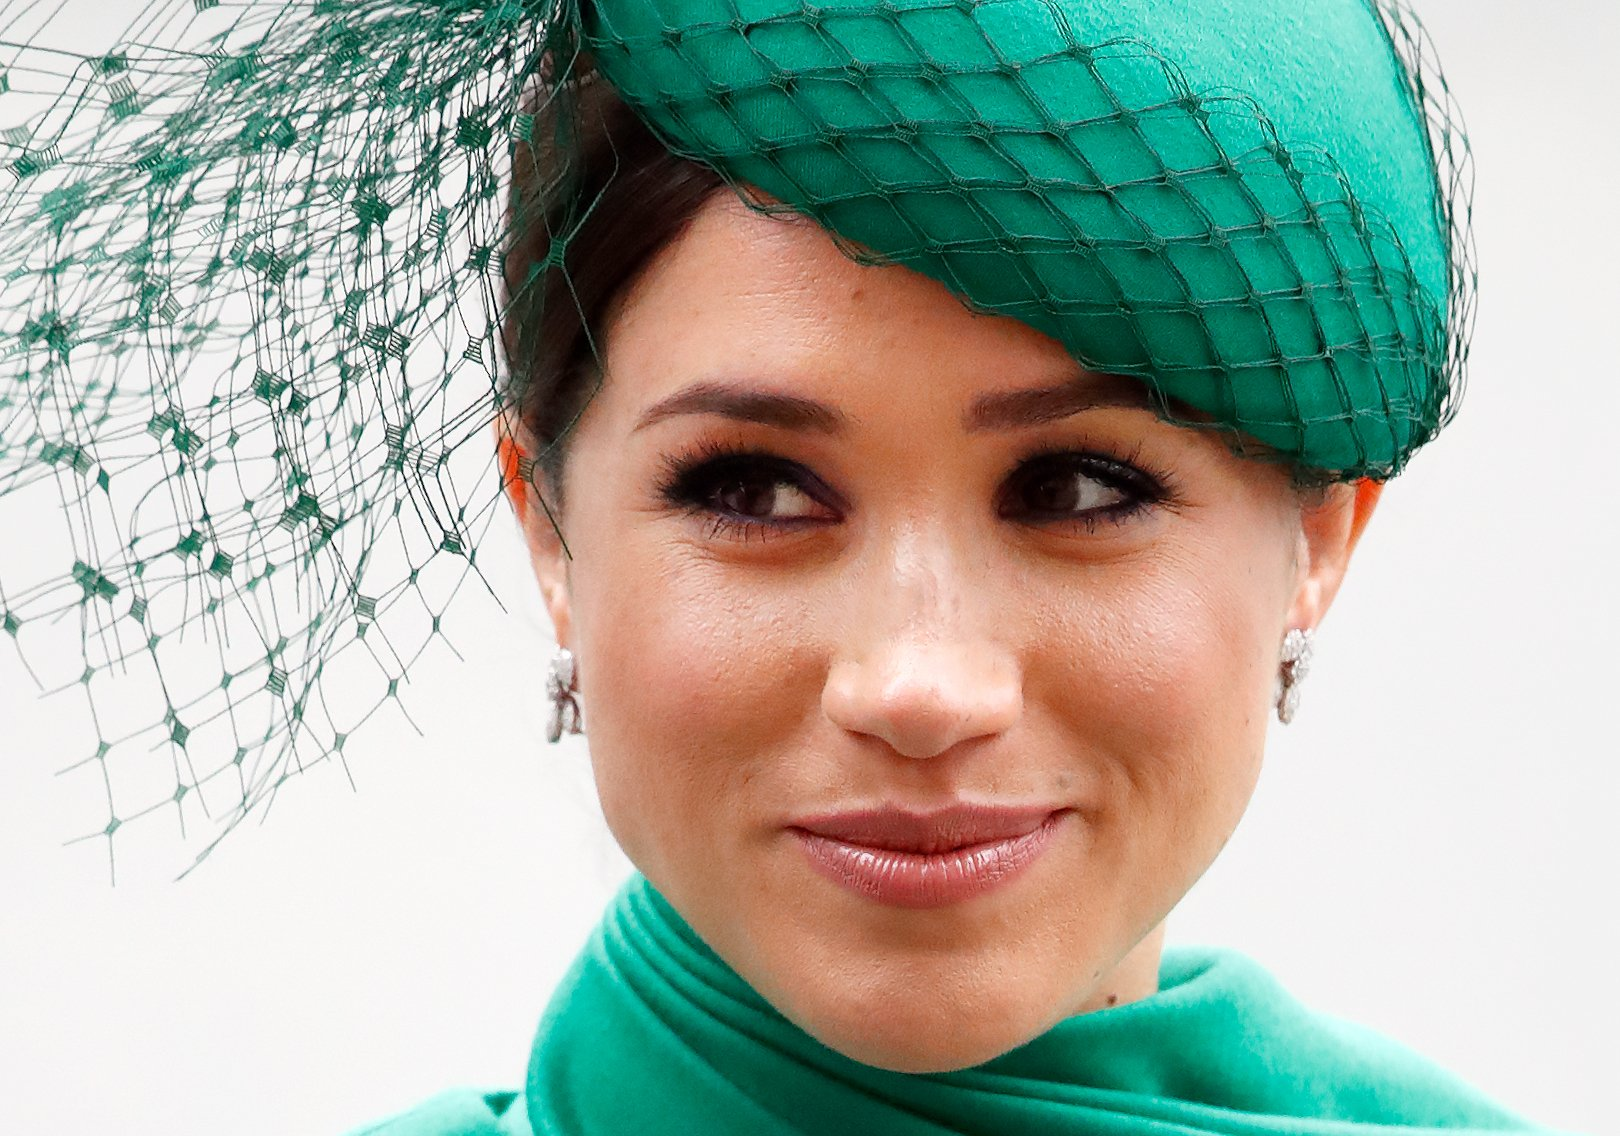 Meghan, Duchess of Sussex attends the Commonwealth Day Service 2020 at Westminster Abbey on March 9, 2020 in London, England.  Source: Getty Images